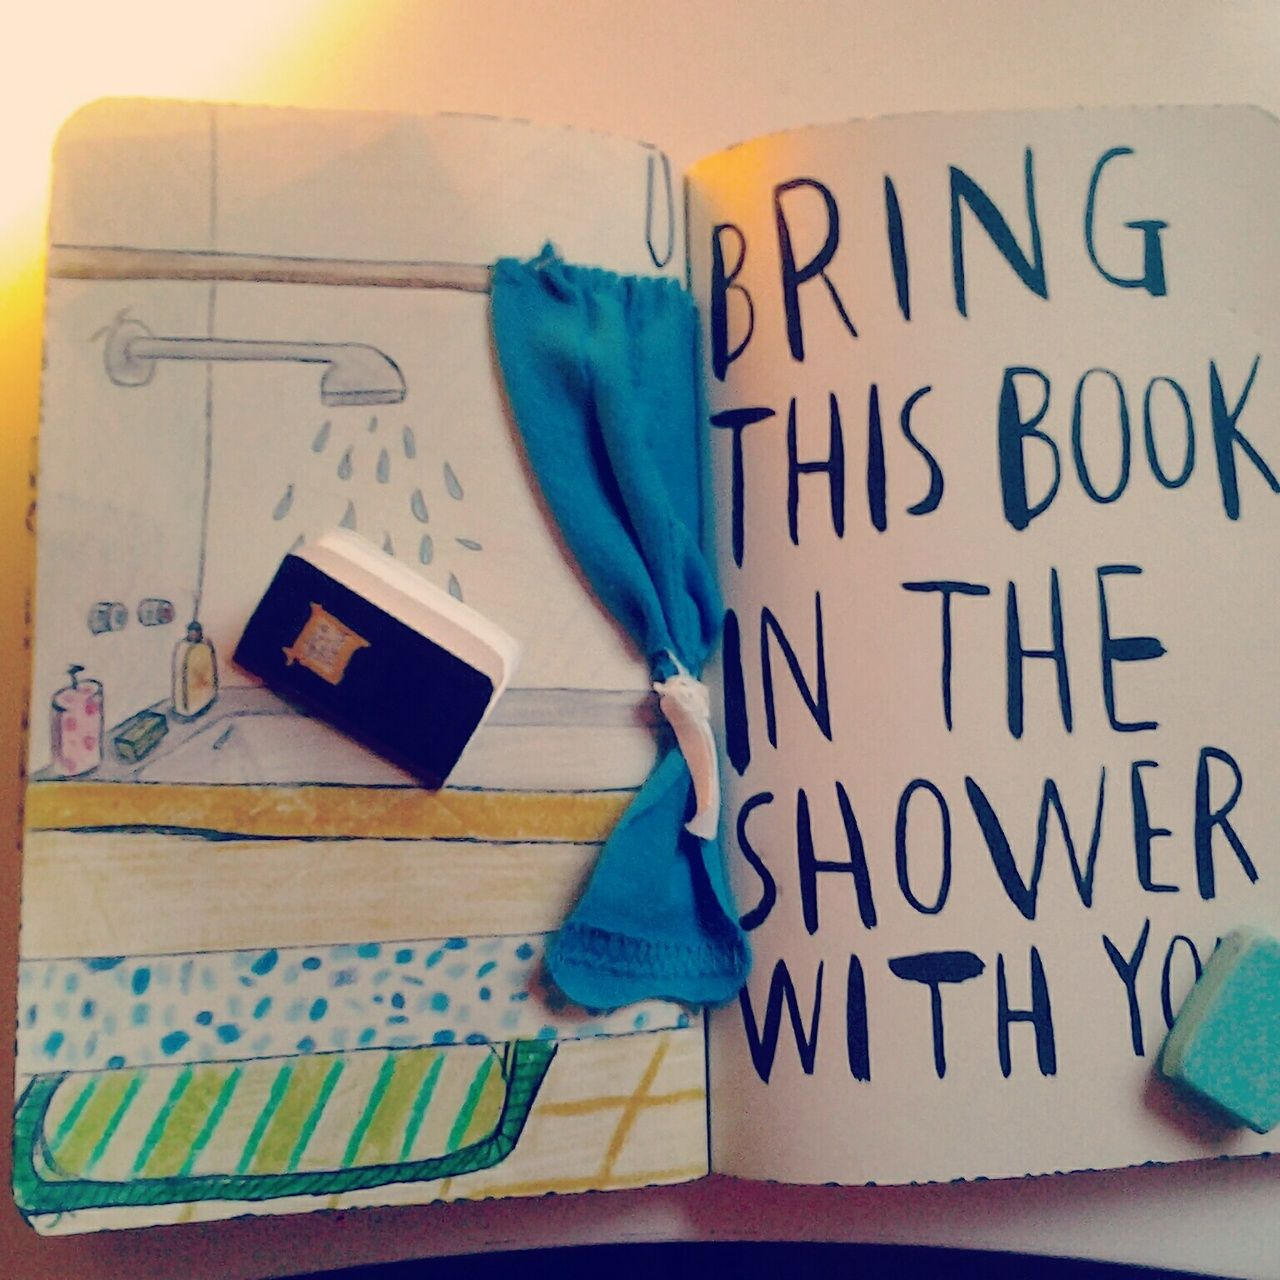 WTJ, bring this book it the shower with you   Wreak this